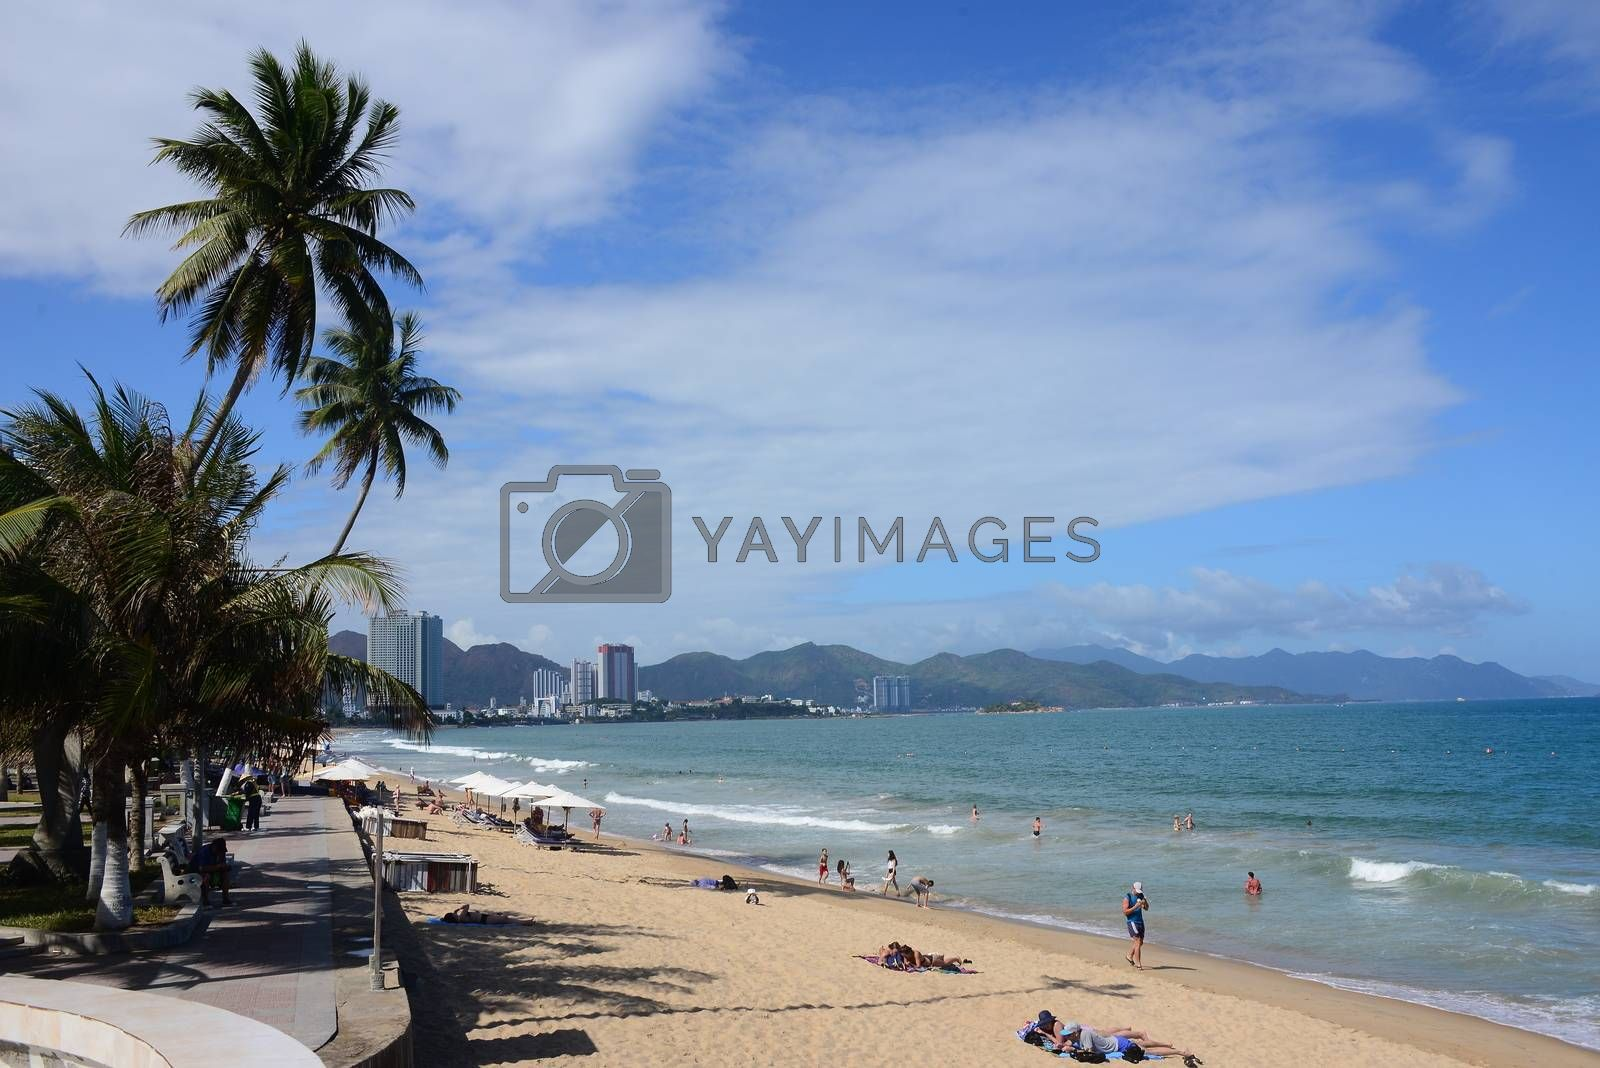 NHA TRANG, VIETNAM – 29 FEBRUARY 2020 : Nha Trang beaches are spread out around the beach resort city, offering a myriad of sightseeing and recreational activities for visitors